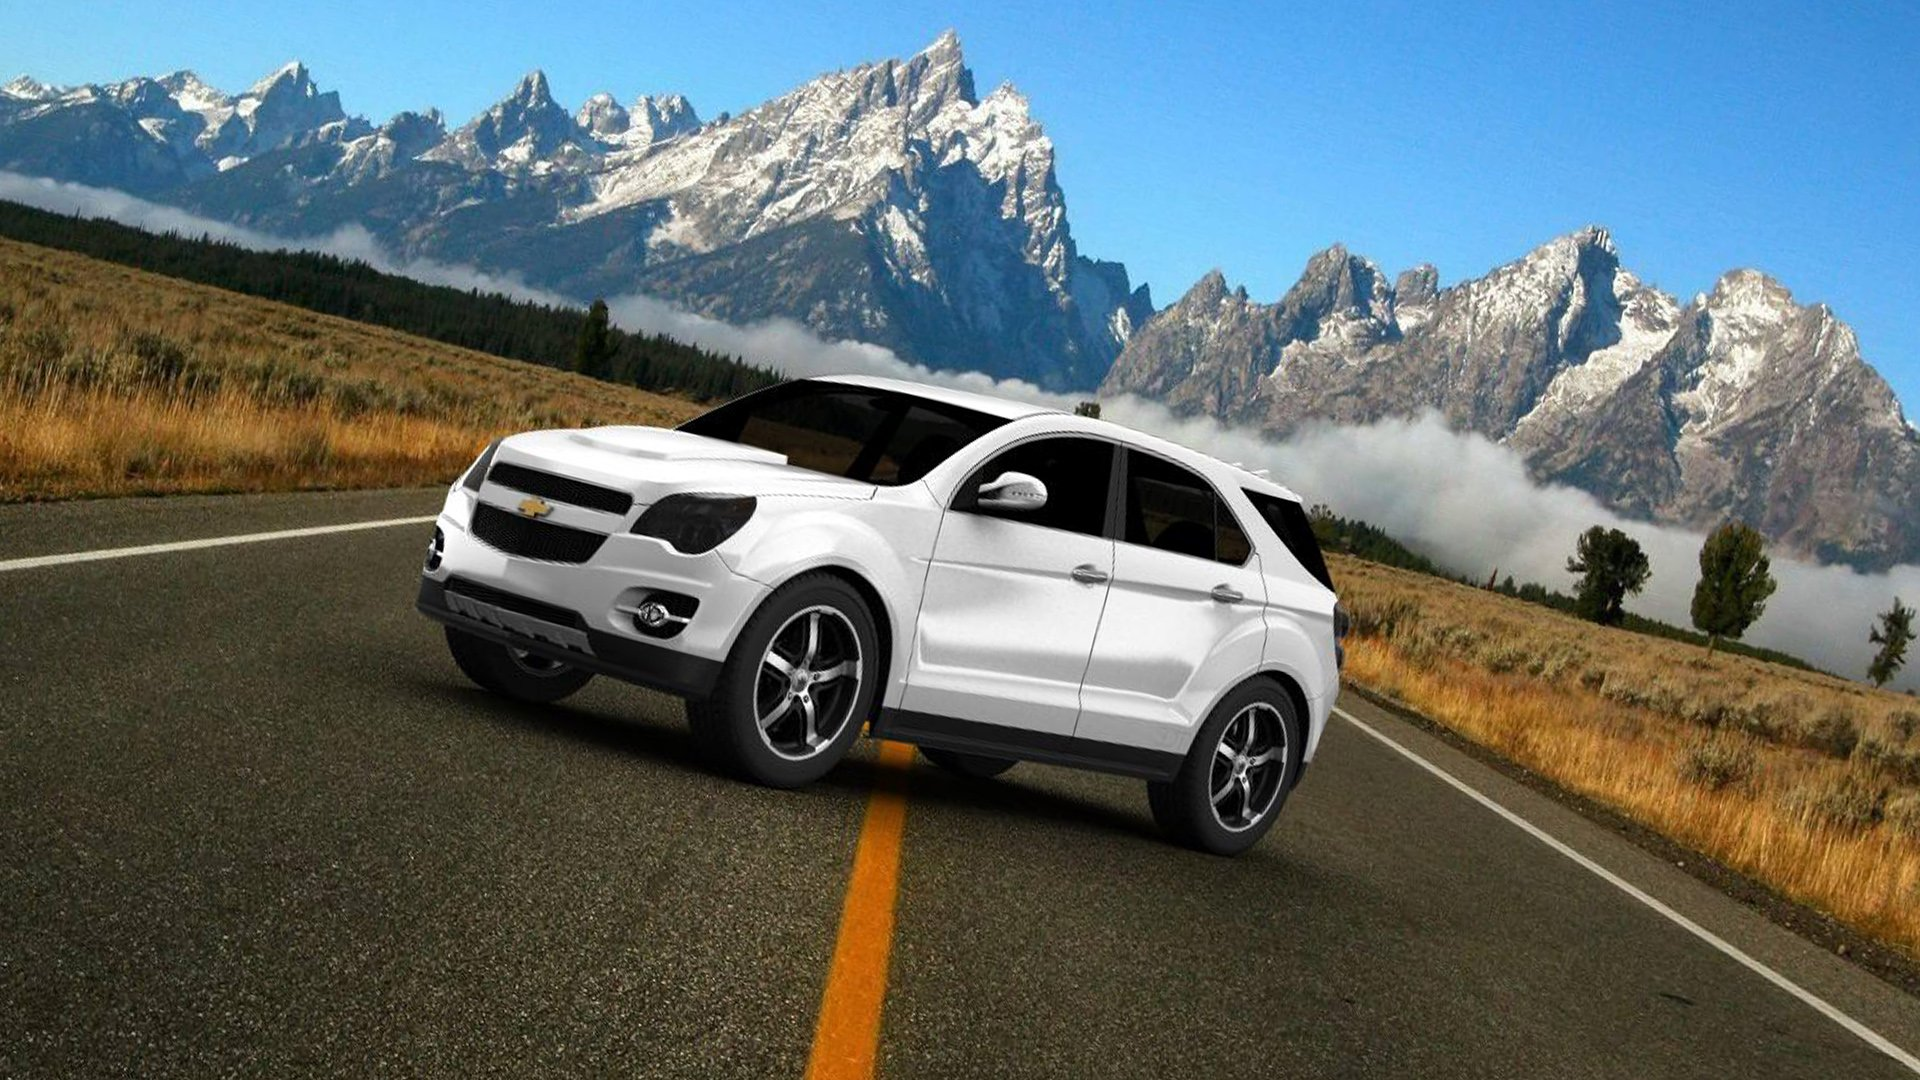 New 2019 Chevrolet Equinox Exterior Changes